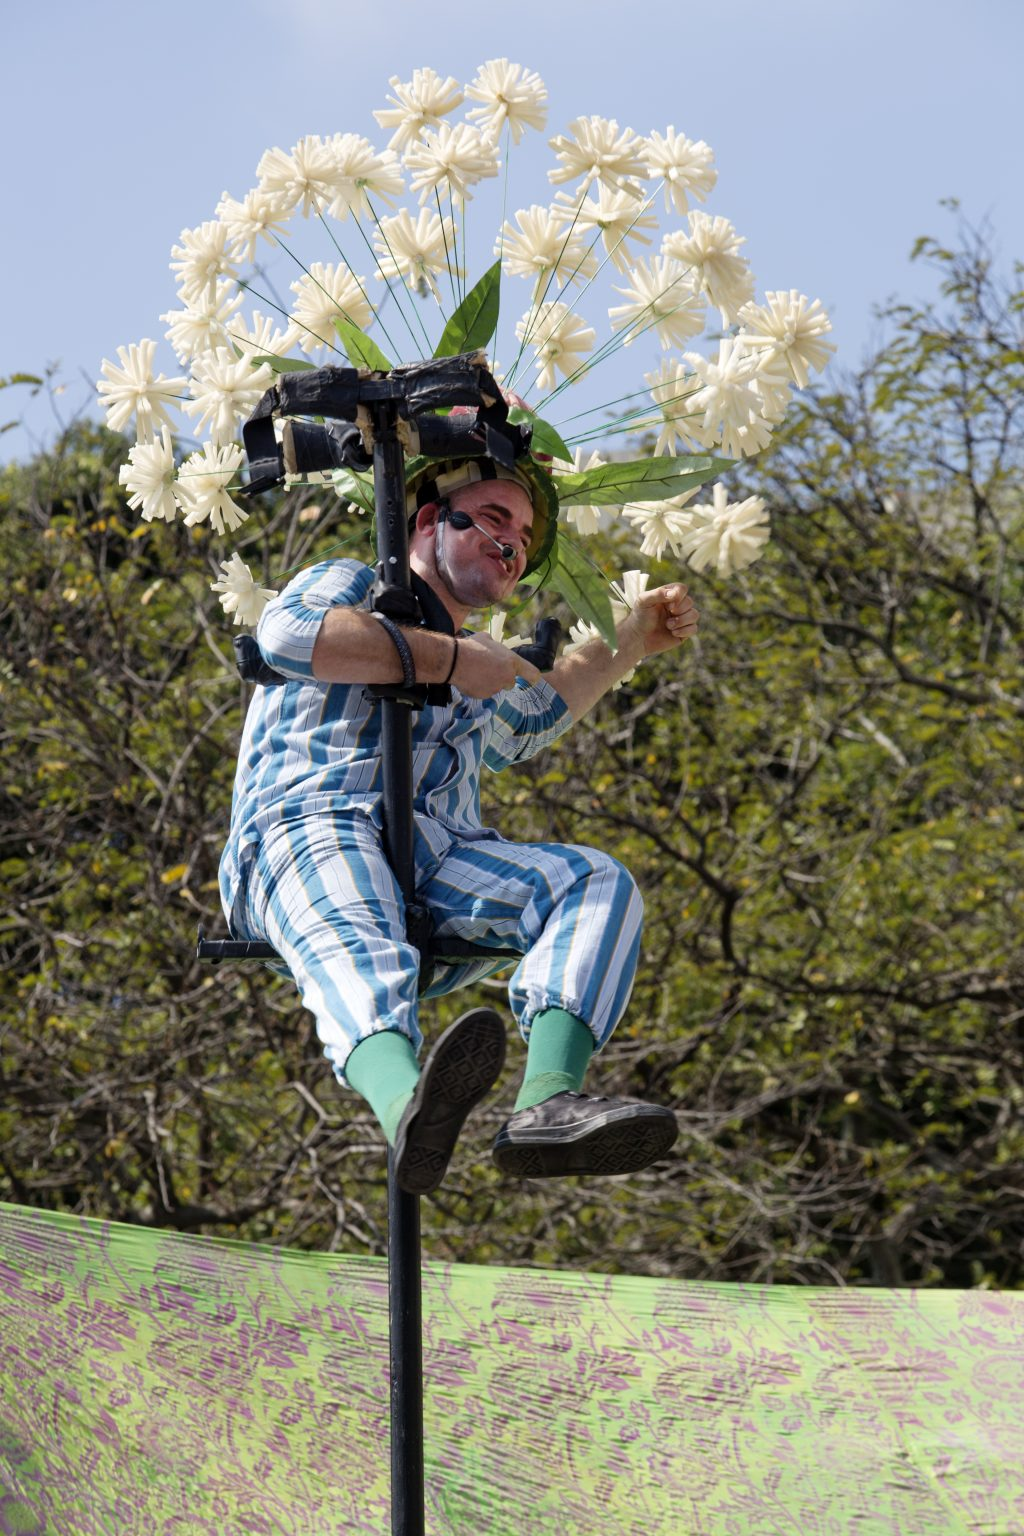 Aerial performer in Graeae's The Garden in the Olympic Boulevard in Rio de Janeiro. Large white flowers are attached to his helmet. He is wearing a stripped blue outfit. Trees can be seend out of focus in the background.